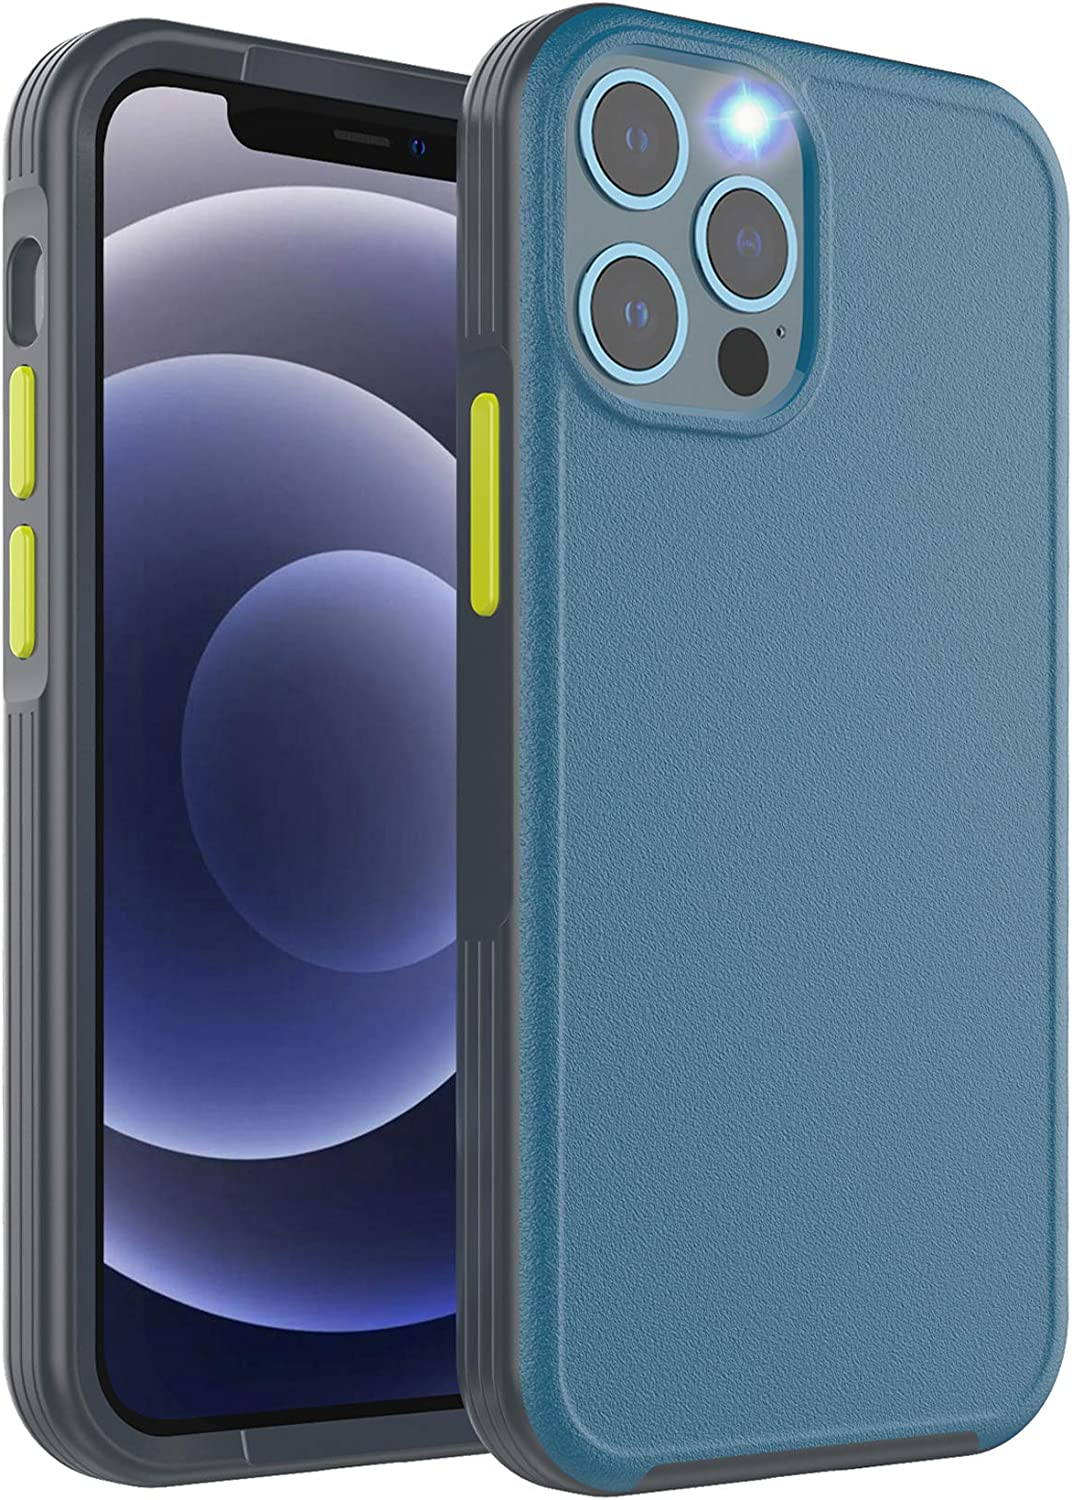 ykooe Shockproof Compatible iPhone 12 Pro Max Case 6.7